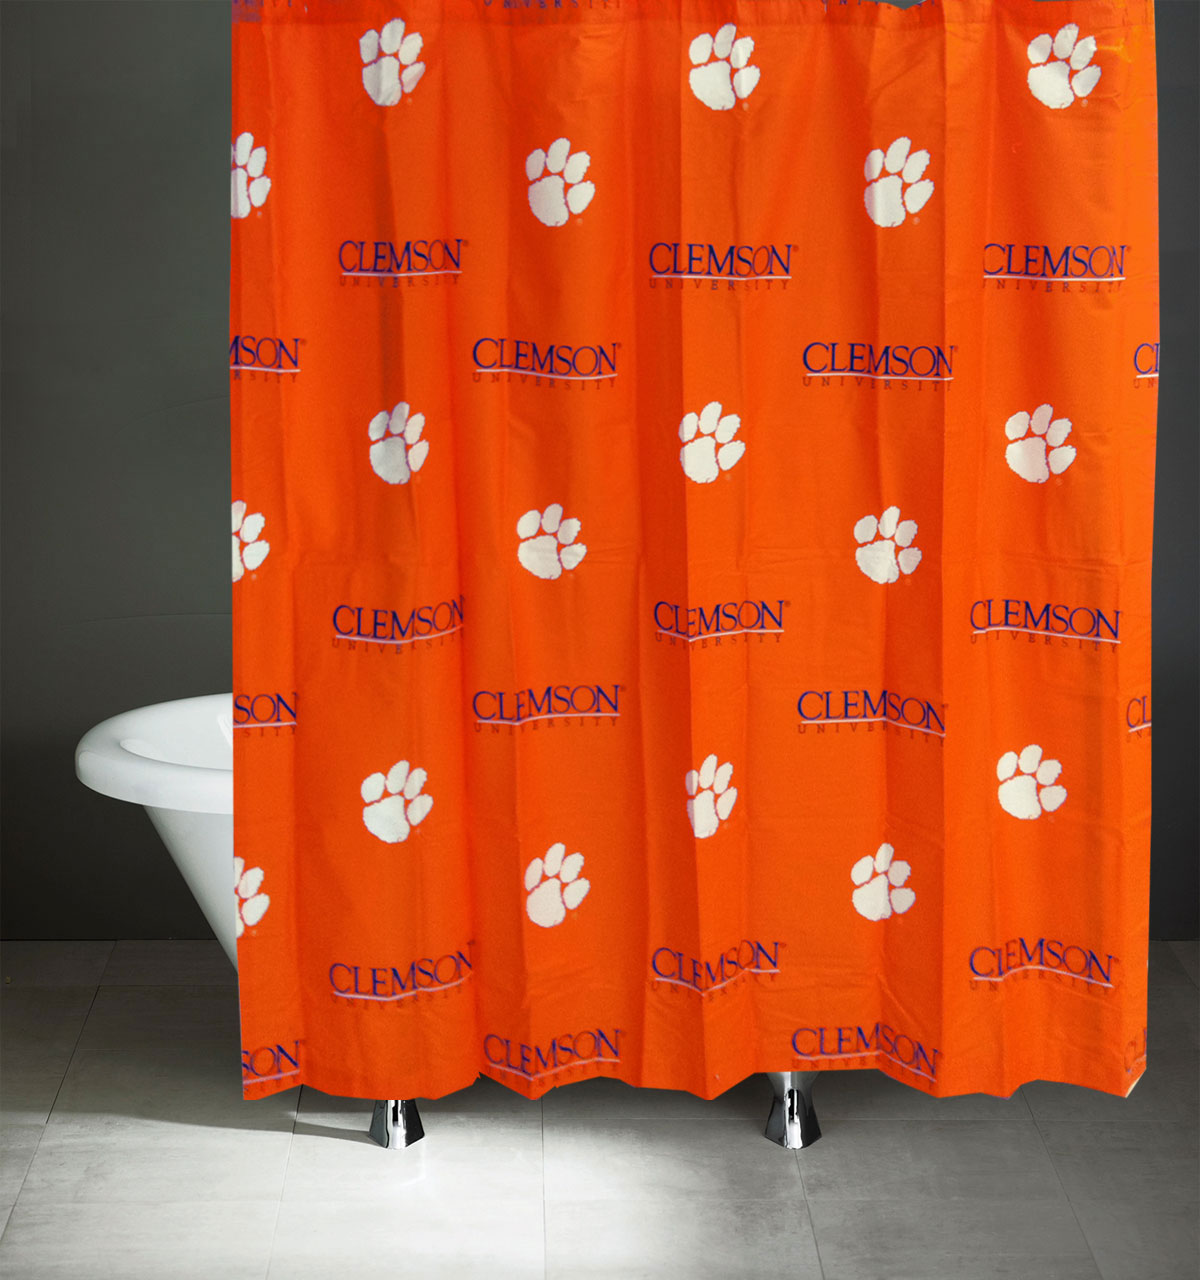 Ncaa Clemson Tigers Full Bed Set Orange Cotton Bedding: NCAA Clemson Tigers Shower Curtain Bathroom Decoration